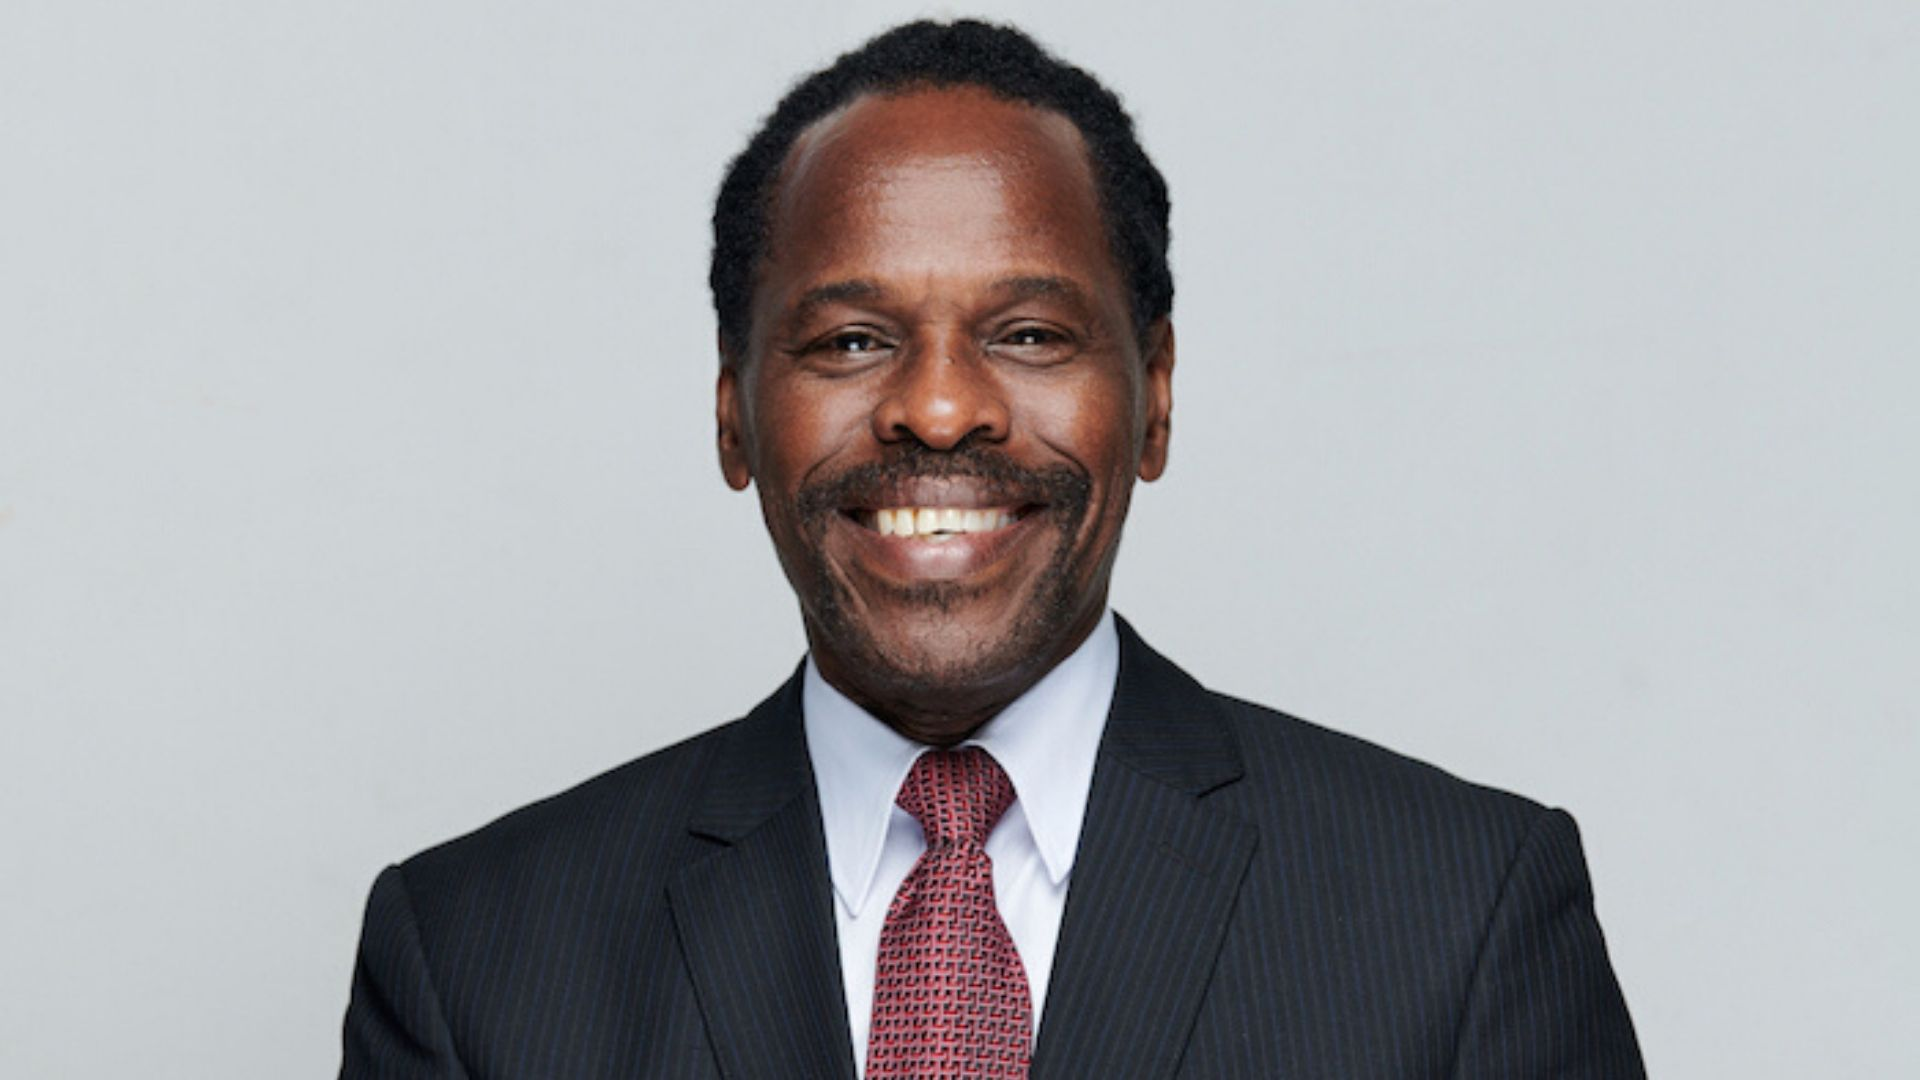 Minister Fitzgerald Hinds